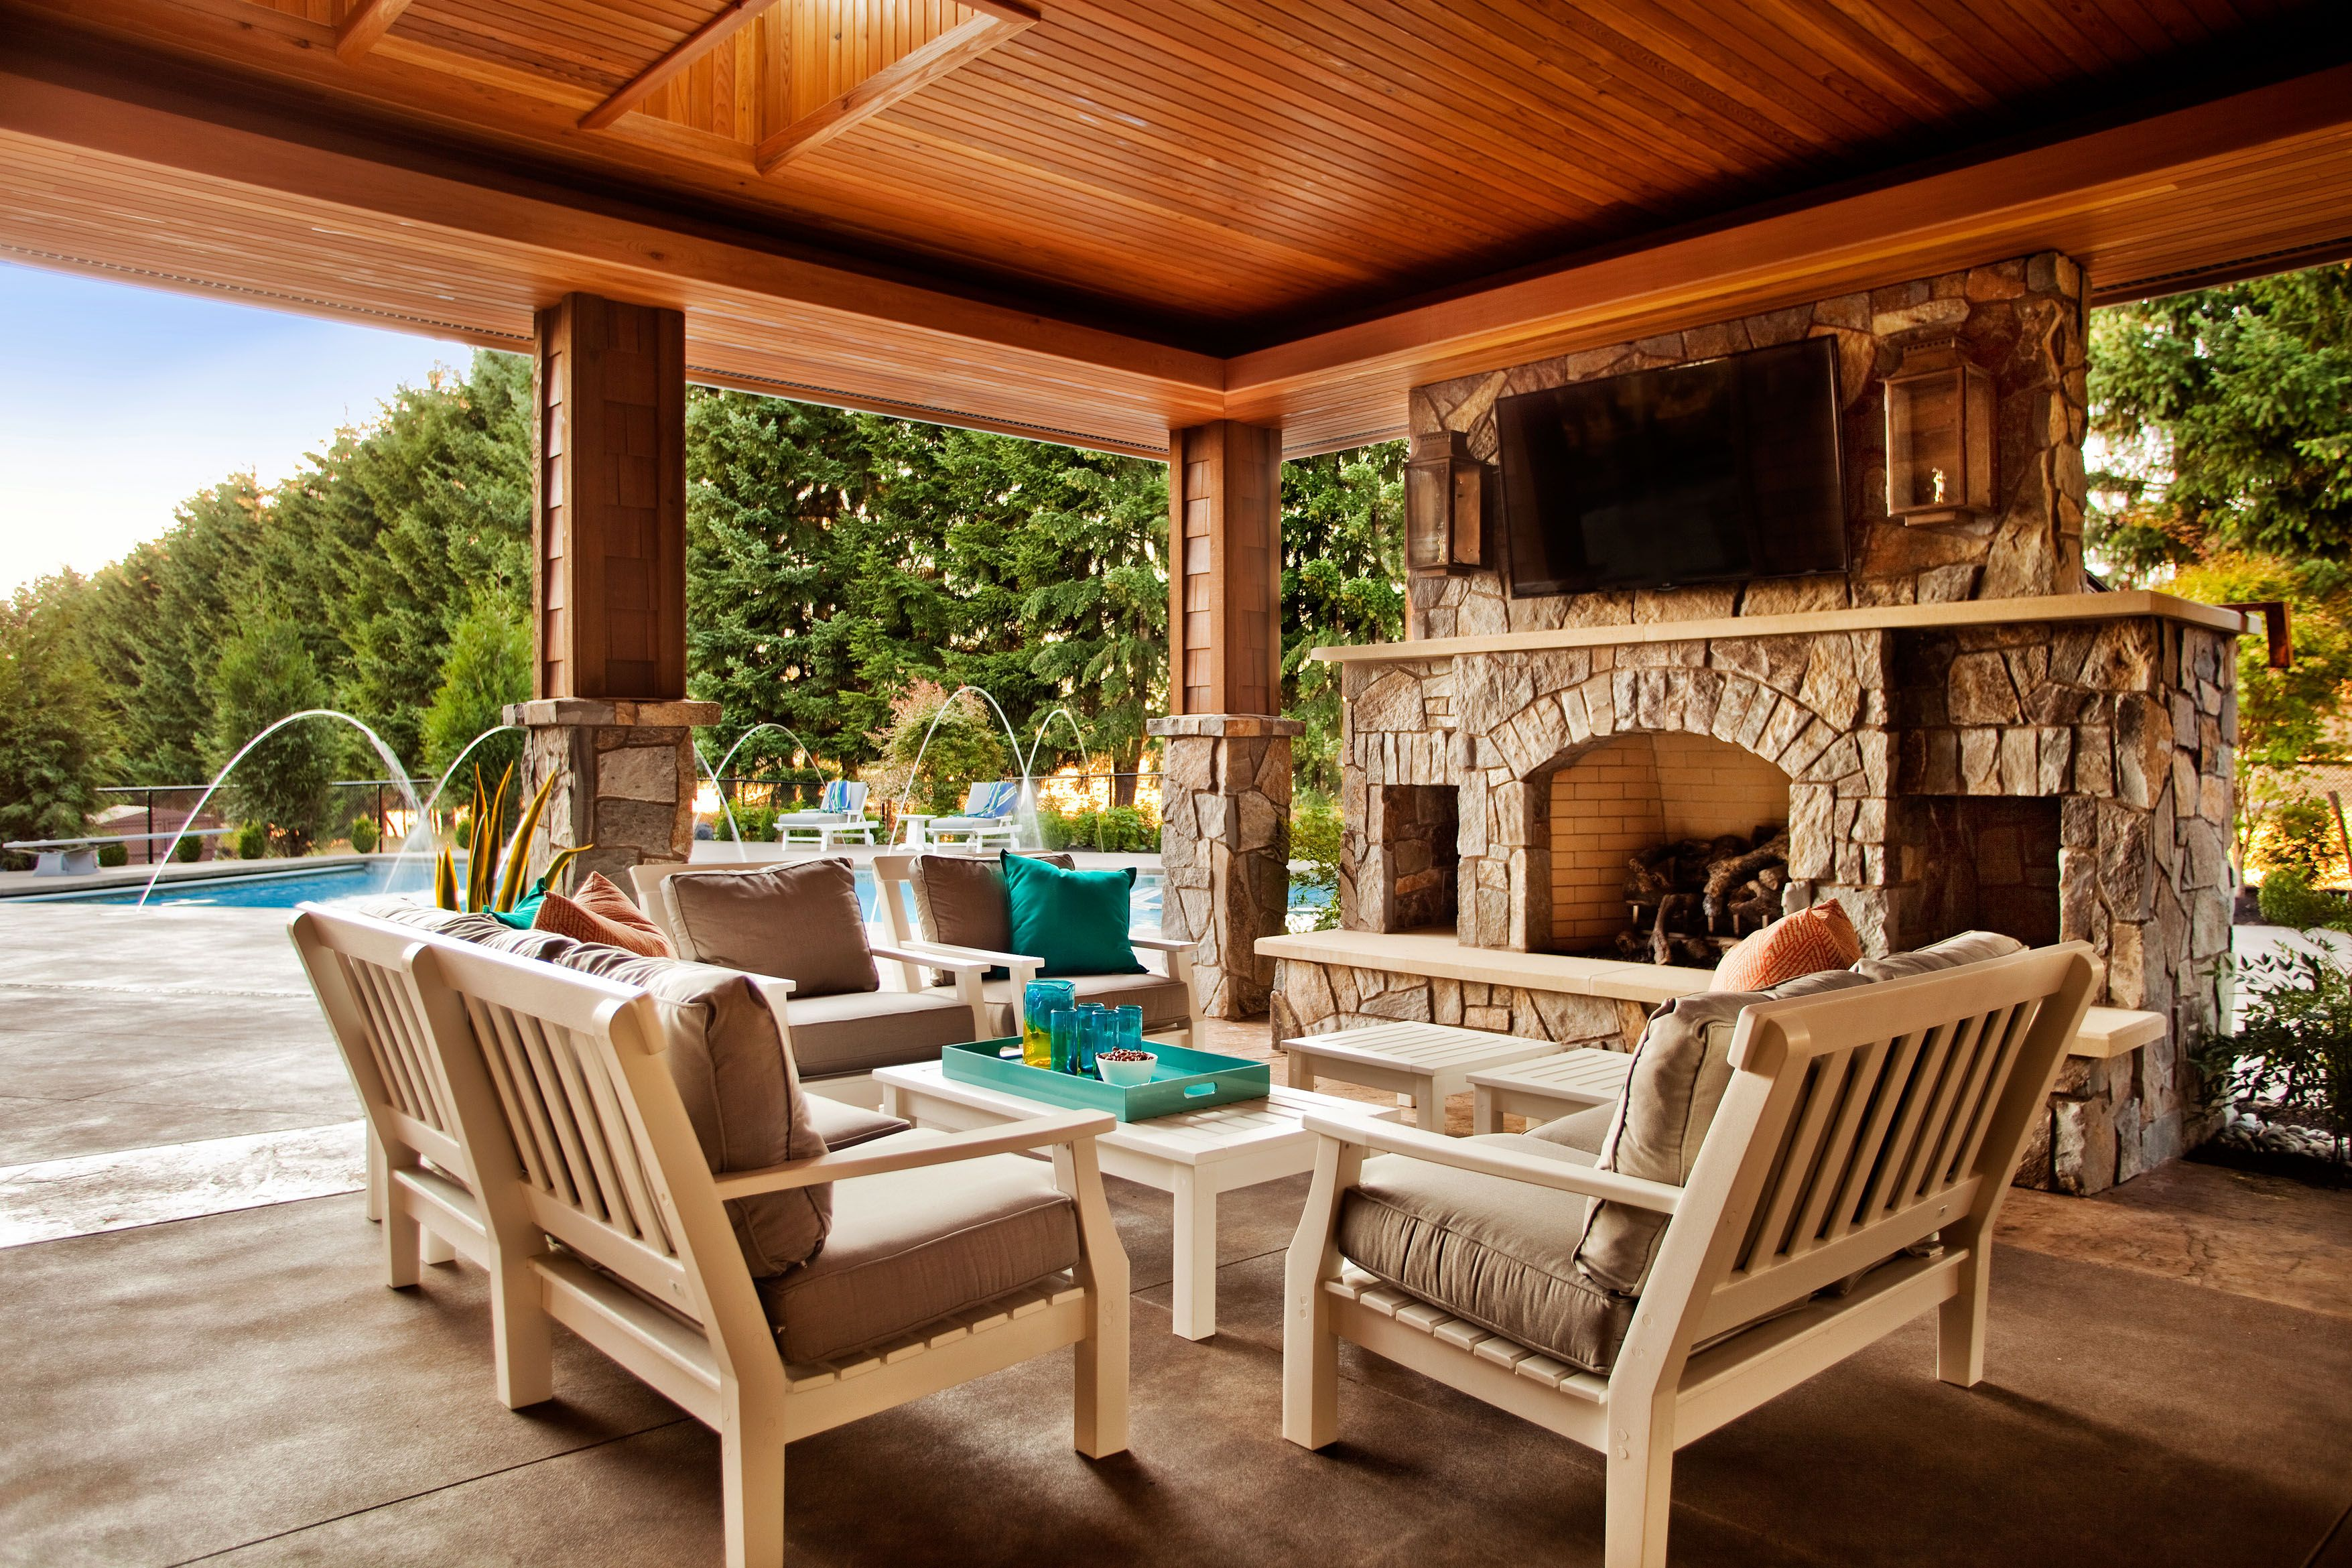 Rustic covered patio ideas - Fascinating Covered Patio For Outdoor Space Design Ideas Designer Brown Wooden Ceiling Exposed Panel Over Wooden Dining Patio Set With Brown Fabric Seat